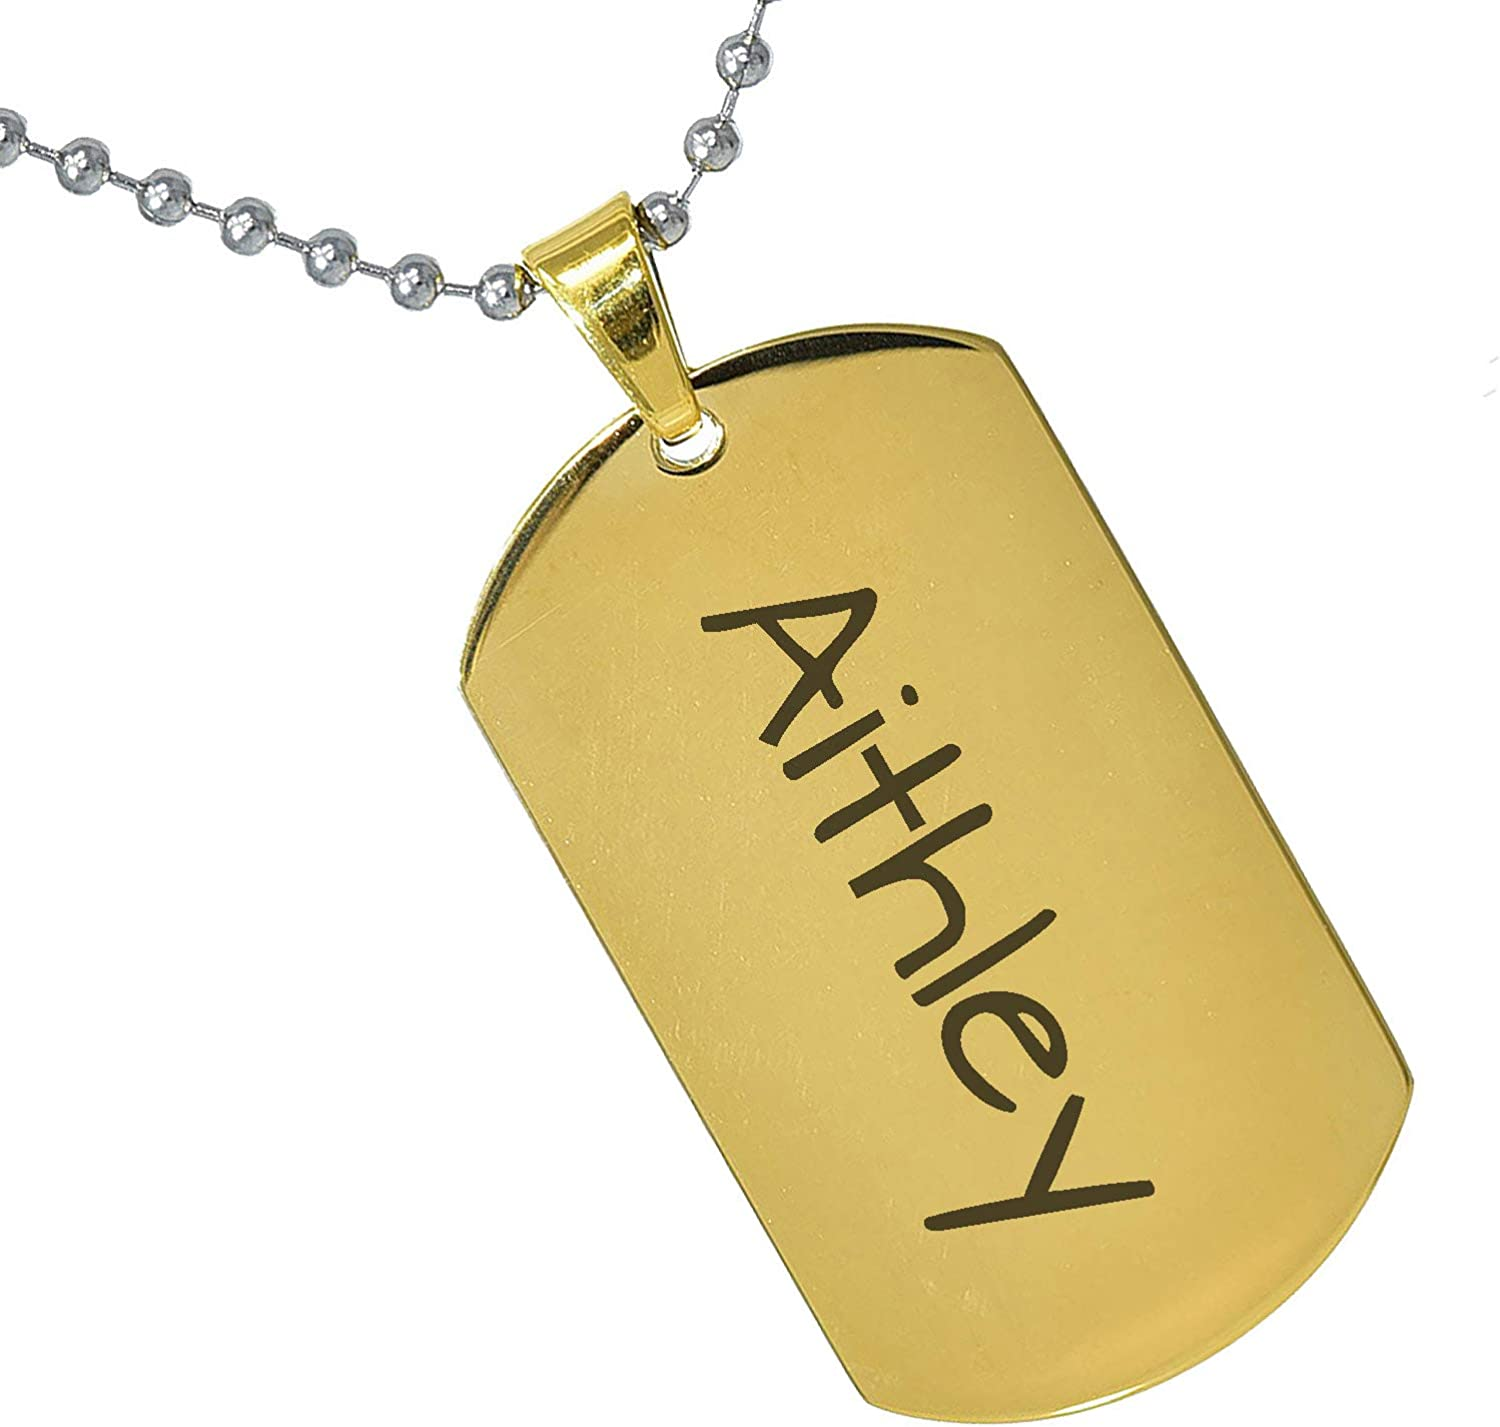 Stainless Steel Silver Gold Black Rose Gold Color Baby Name Aithley Engraved Personalized Gifts For Son Daughter Boyfriend Girlfriend Initial Customizable Pendant Necklace Dog Tags 24 Ball Chains